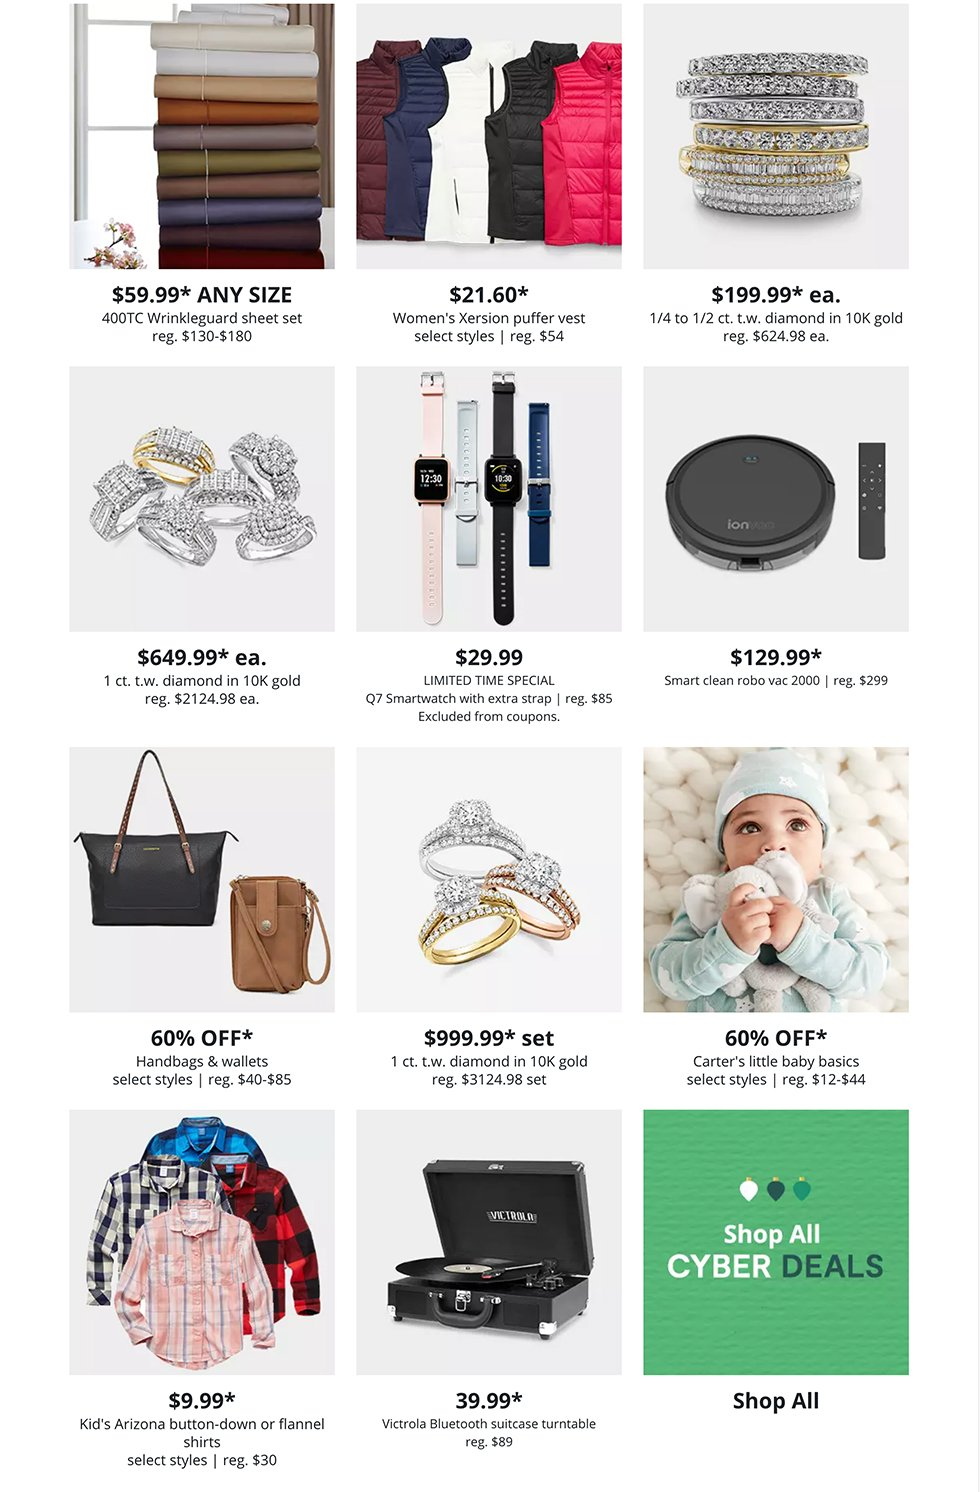 JCPenney Cyber Monday 2020 Page 2